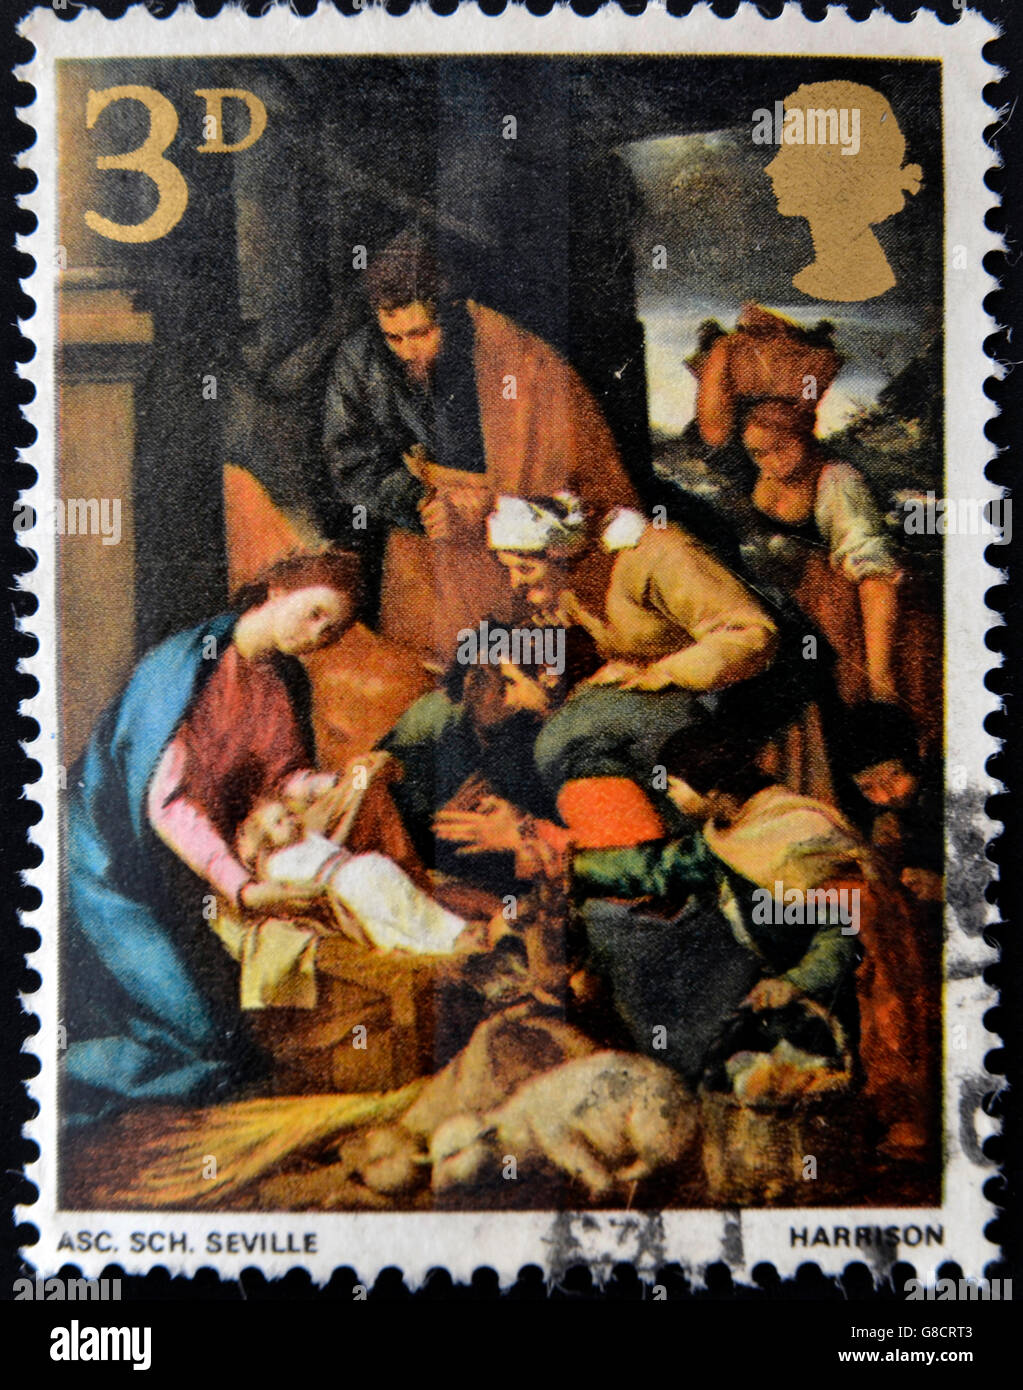 UNITED KINGDOM - CIRCA 1967: A stamp printed in Great Britain shows The Adoration of the Shepherds, School of Seville, - Stock Image